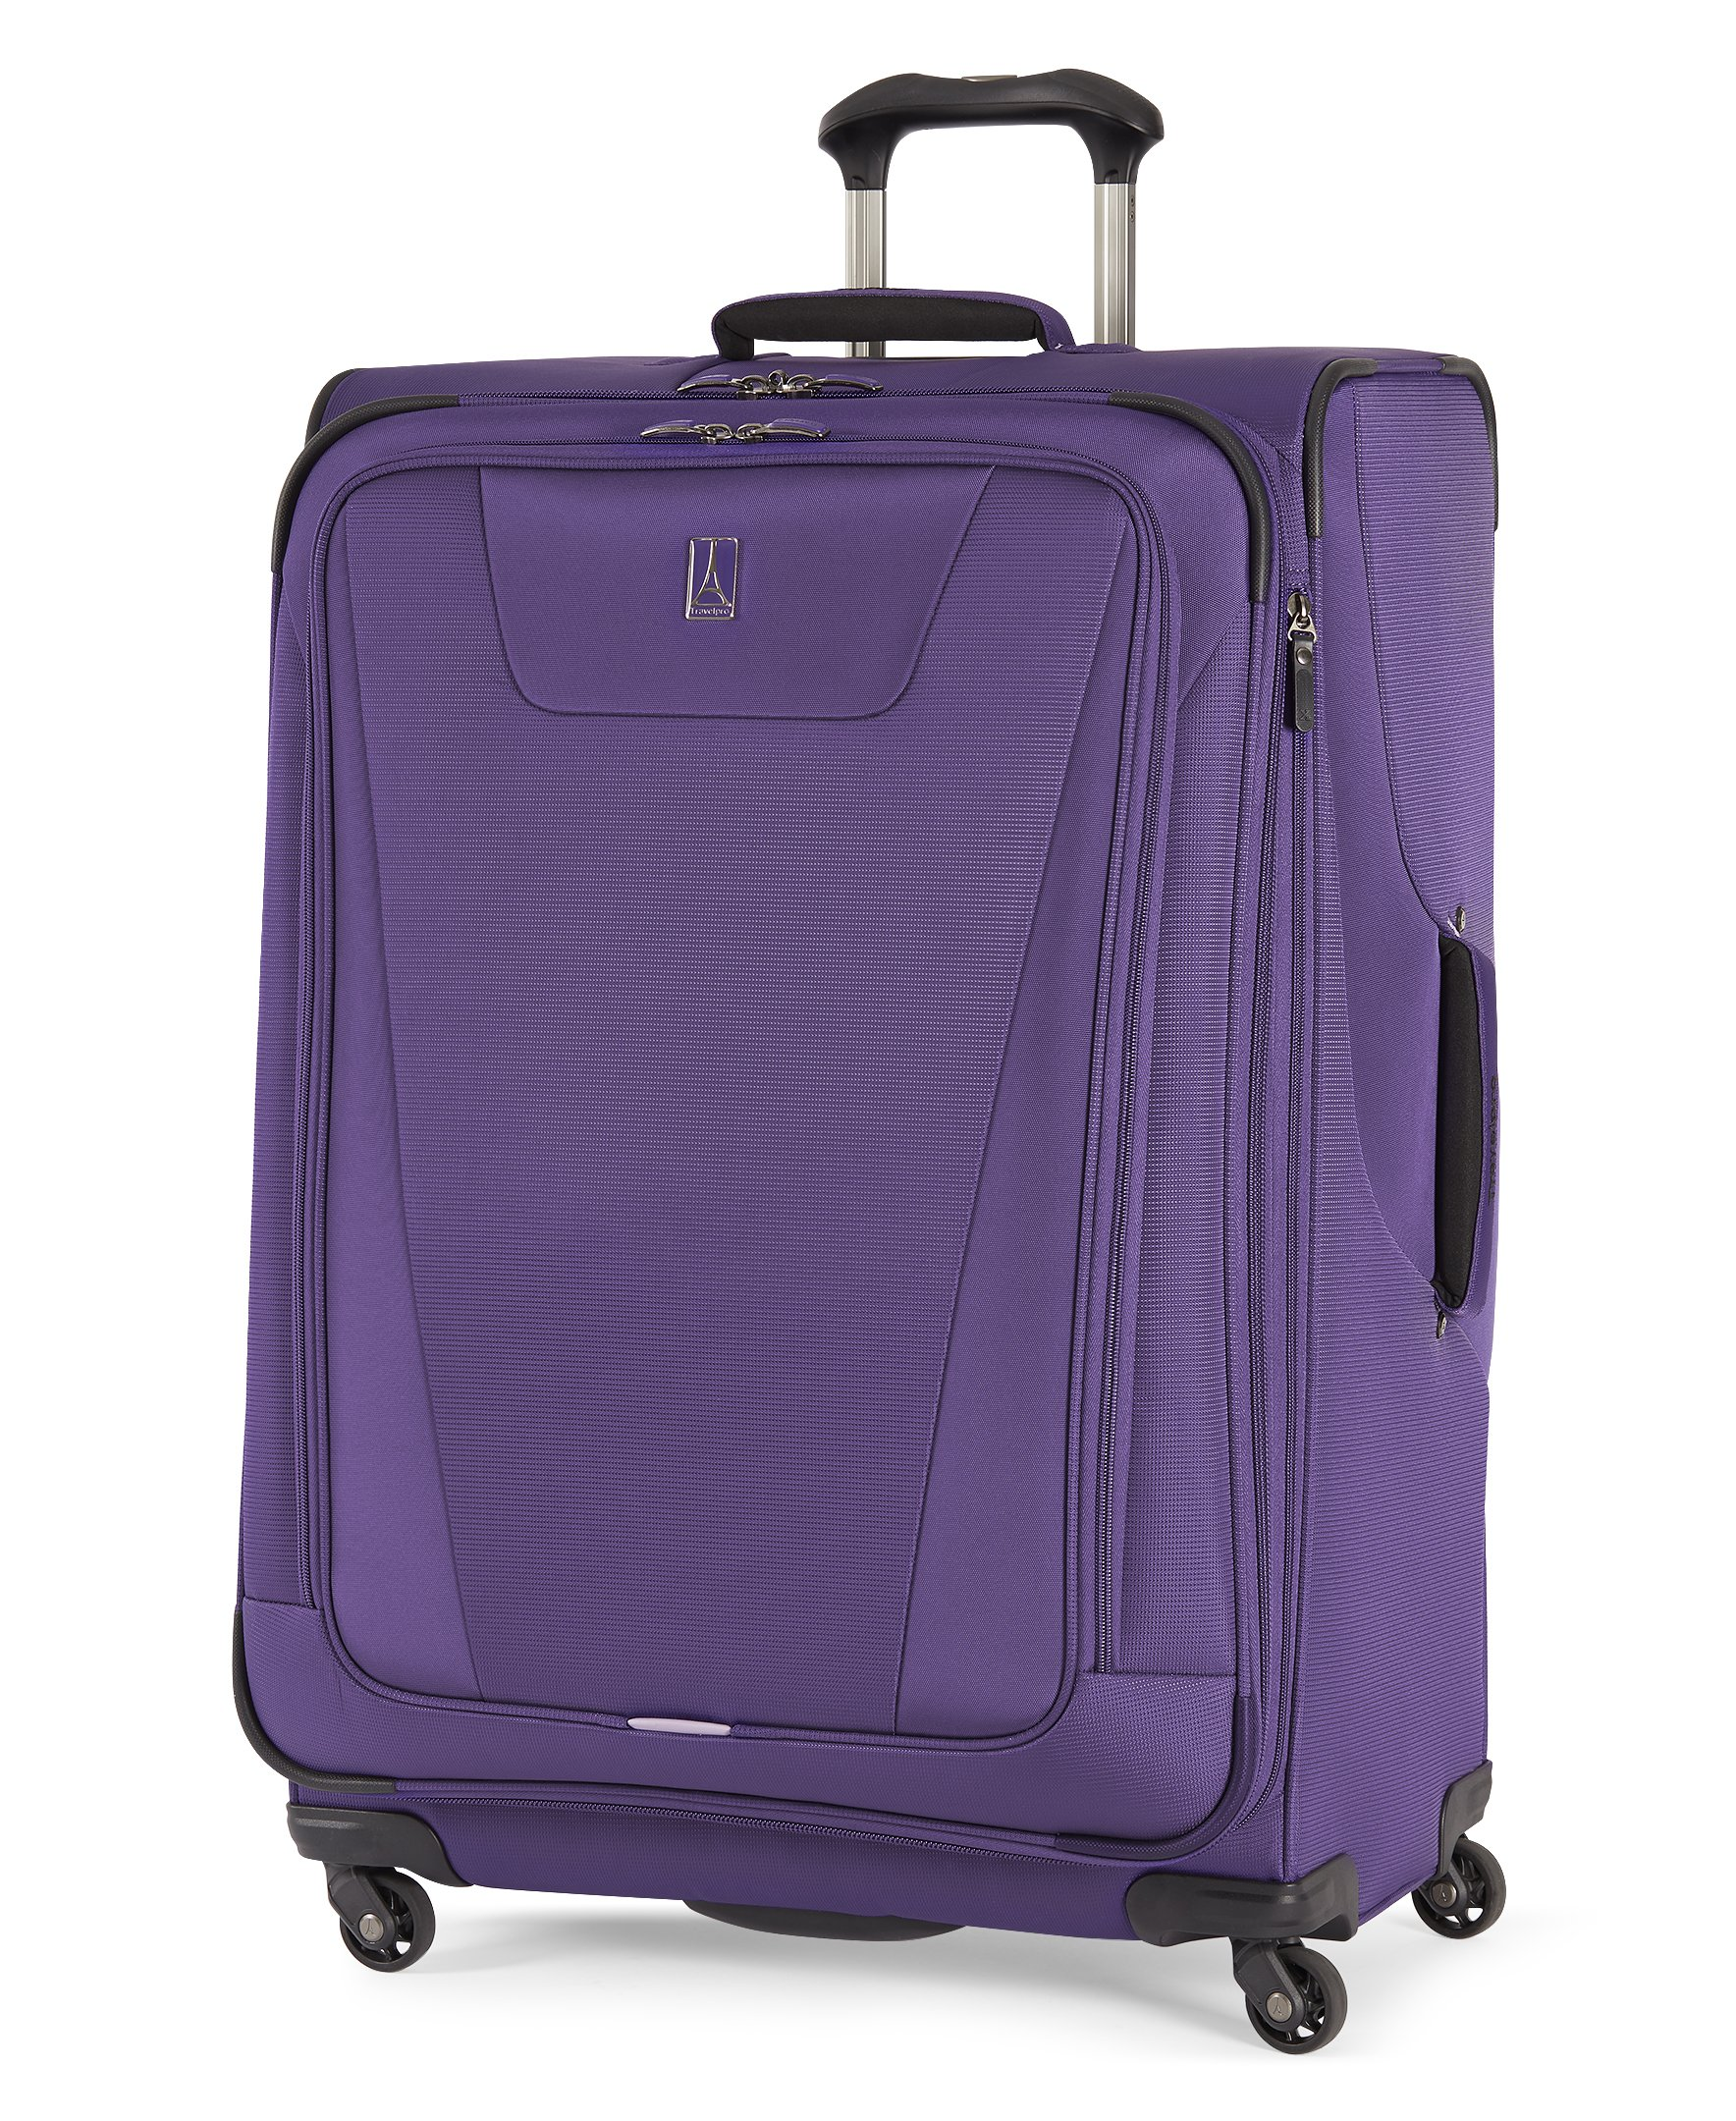 Travelpro Maxlite 4 Expandable 29 Inch Spinner Suitcase, Purple by Travelpro